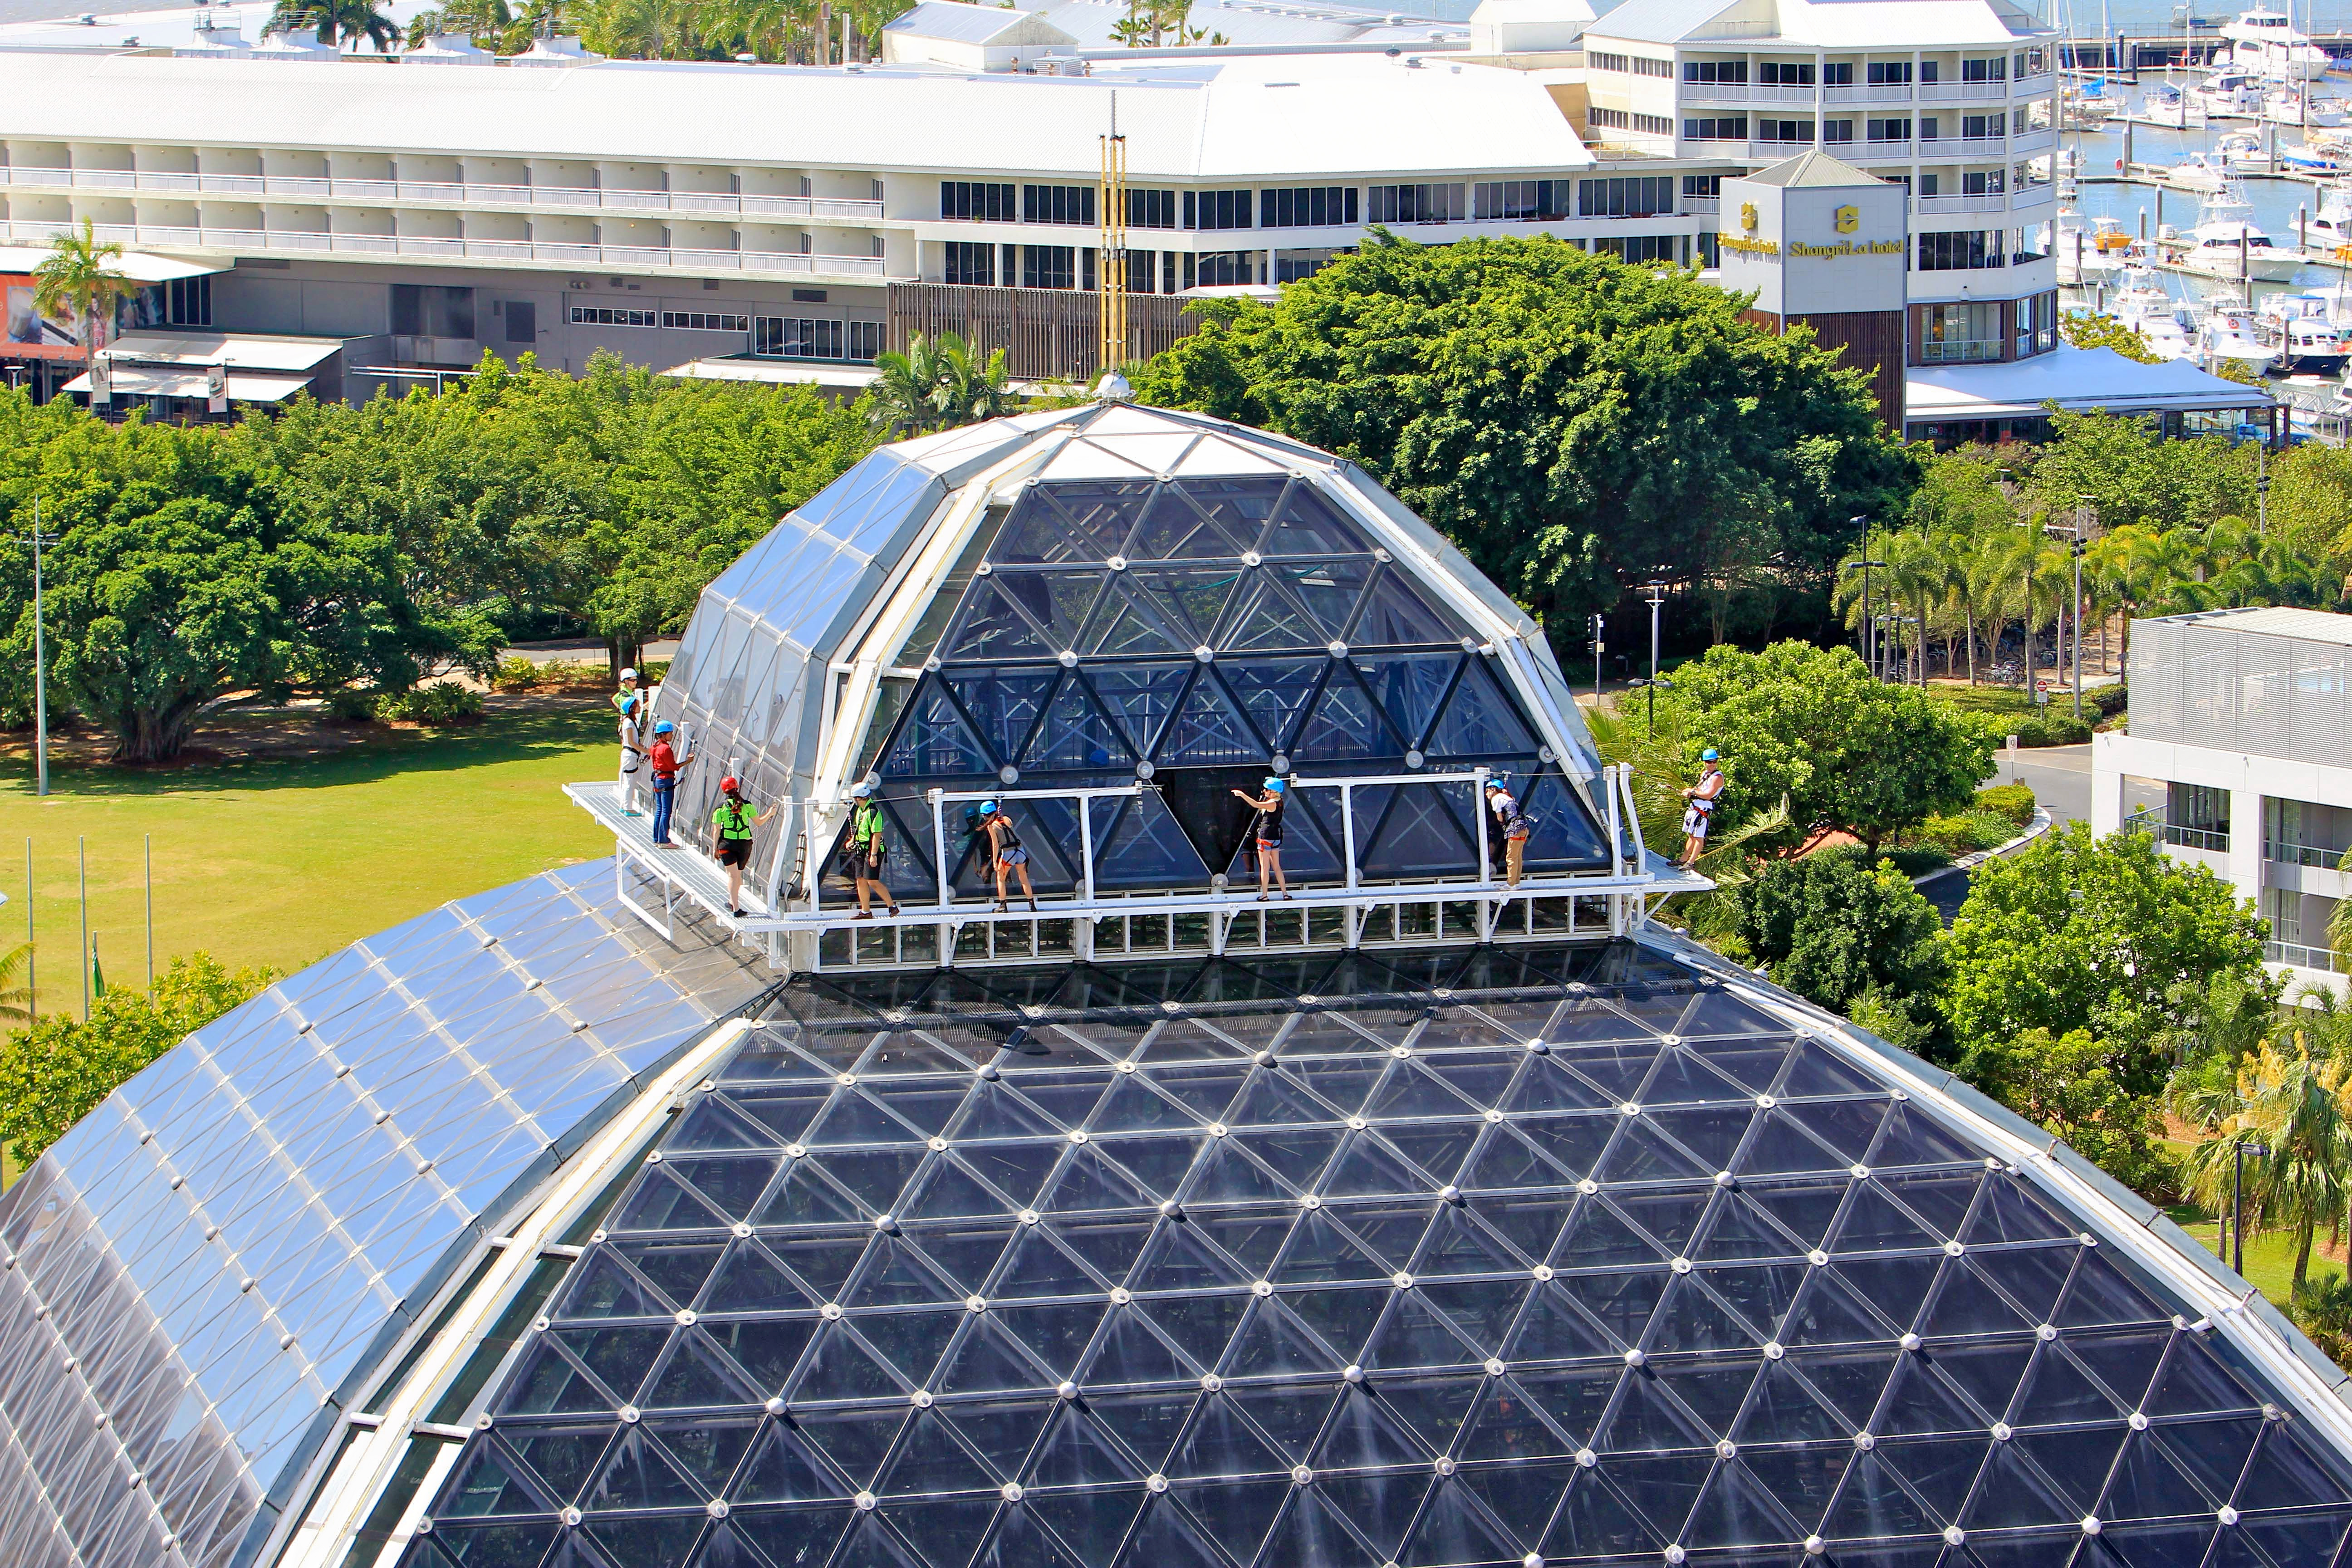 1598940215_cairns_zoom_and_wildlife_dome_domeclimb_exterior_1.jpg